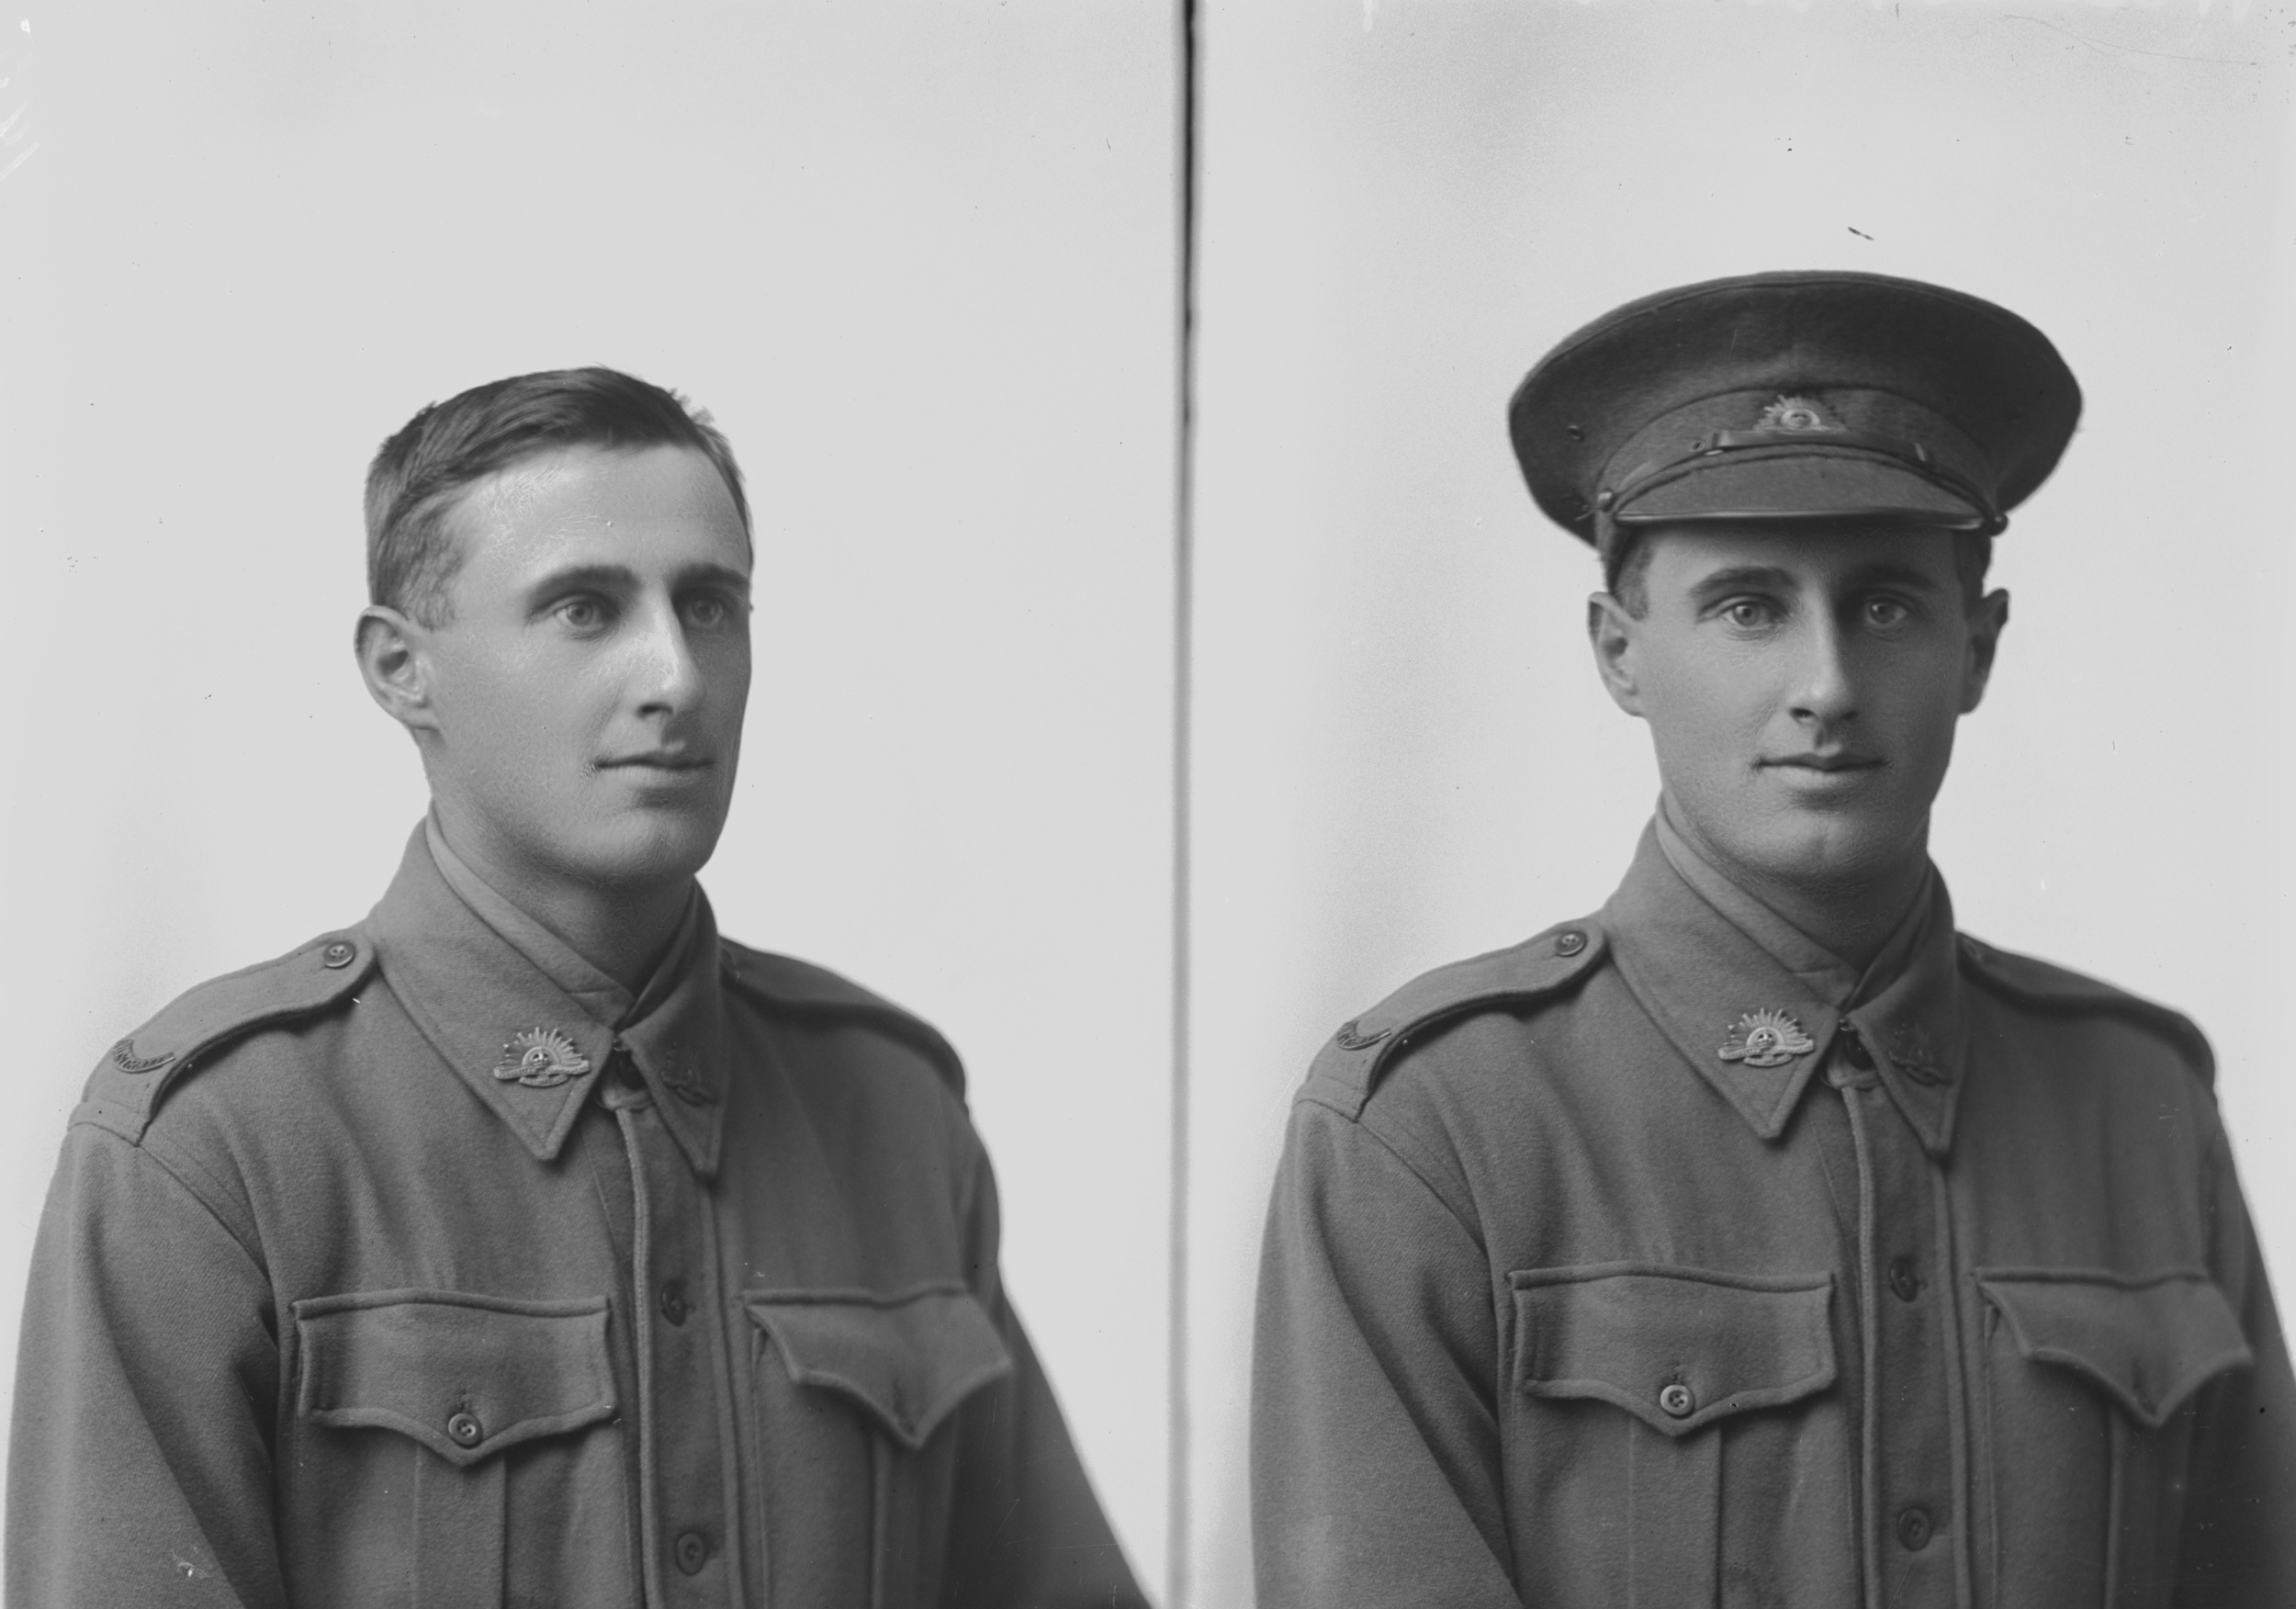 Photographed at the Dease Studio, 117 Barrack Street Perth WA Image courtesy of the State Library of Western Australia: 108659PD